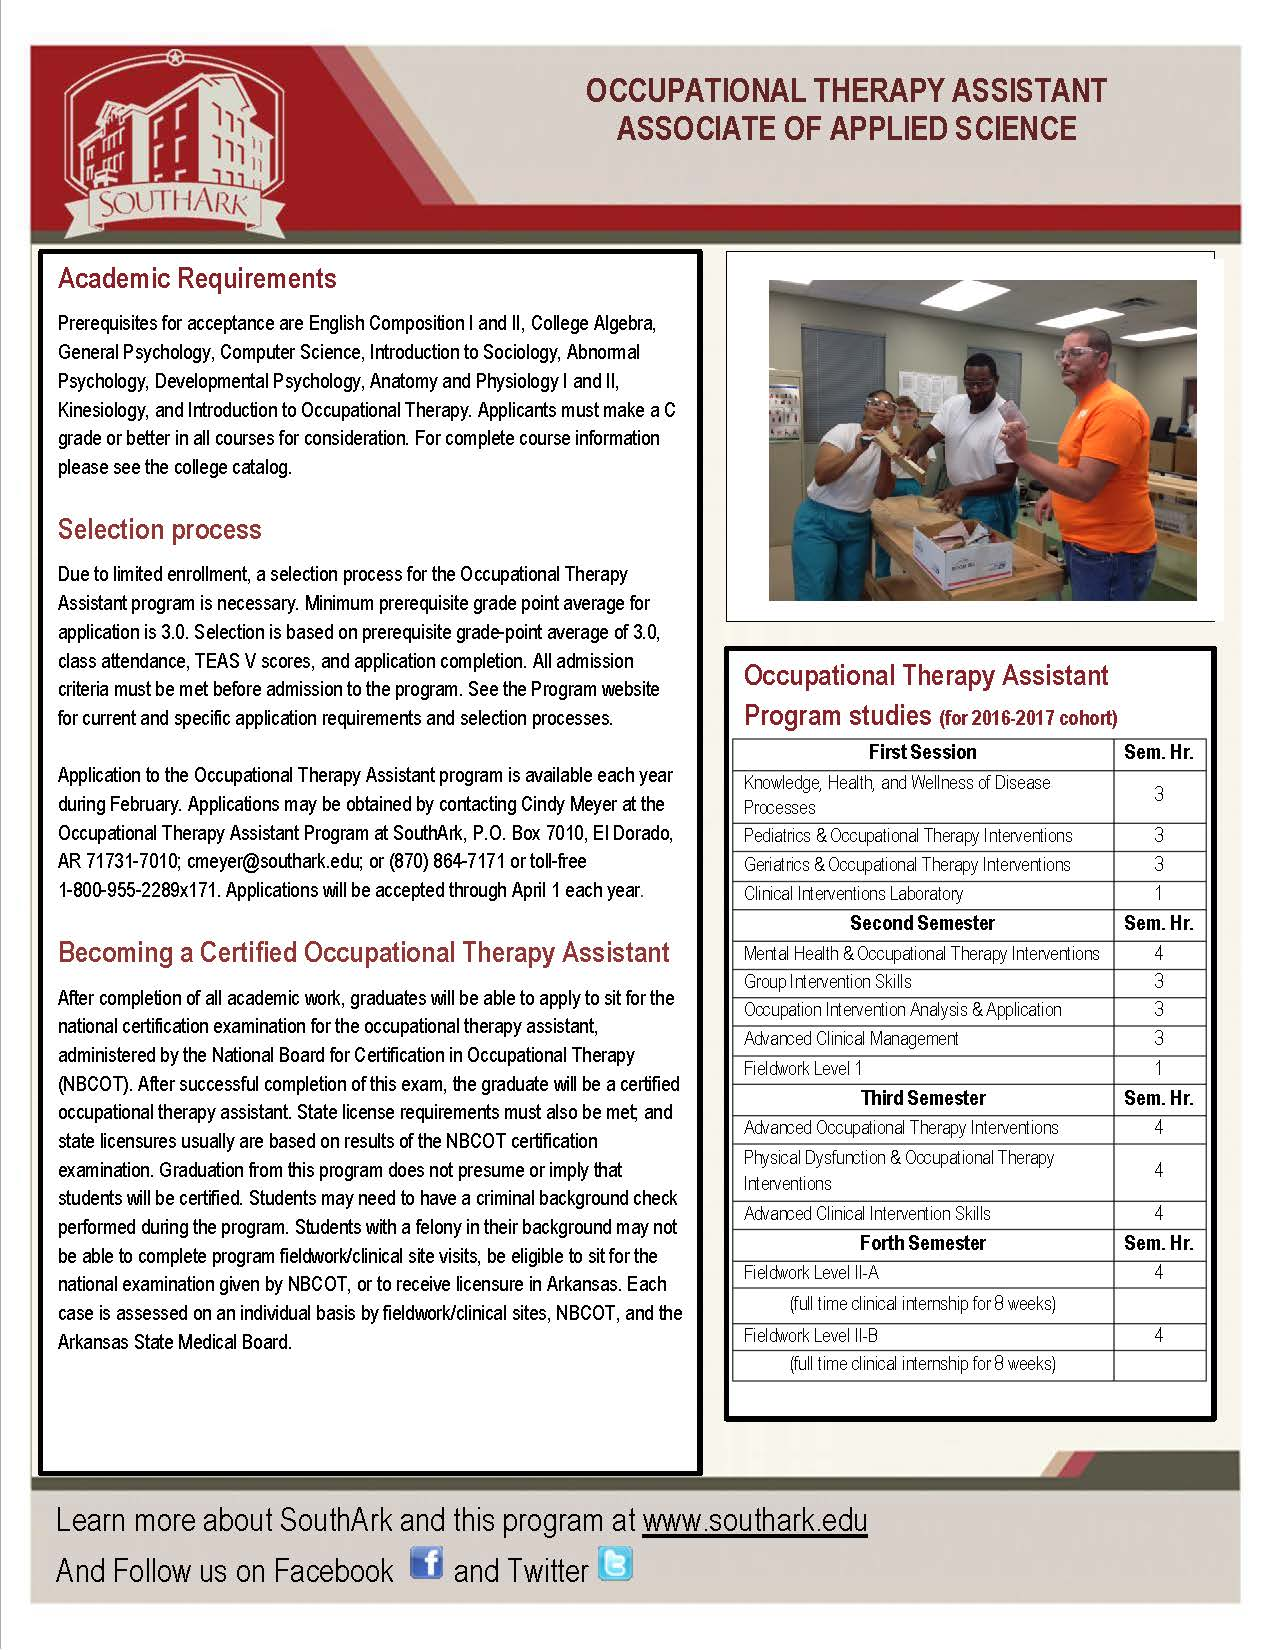 Safety Cards Occupational Therapy